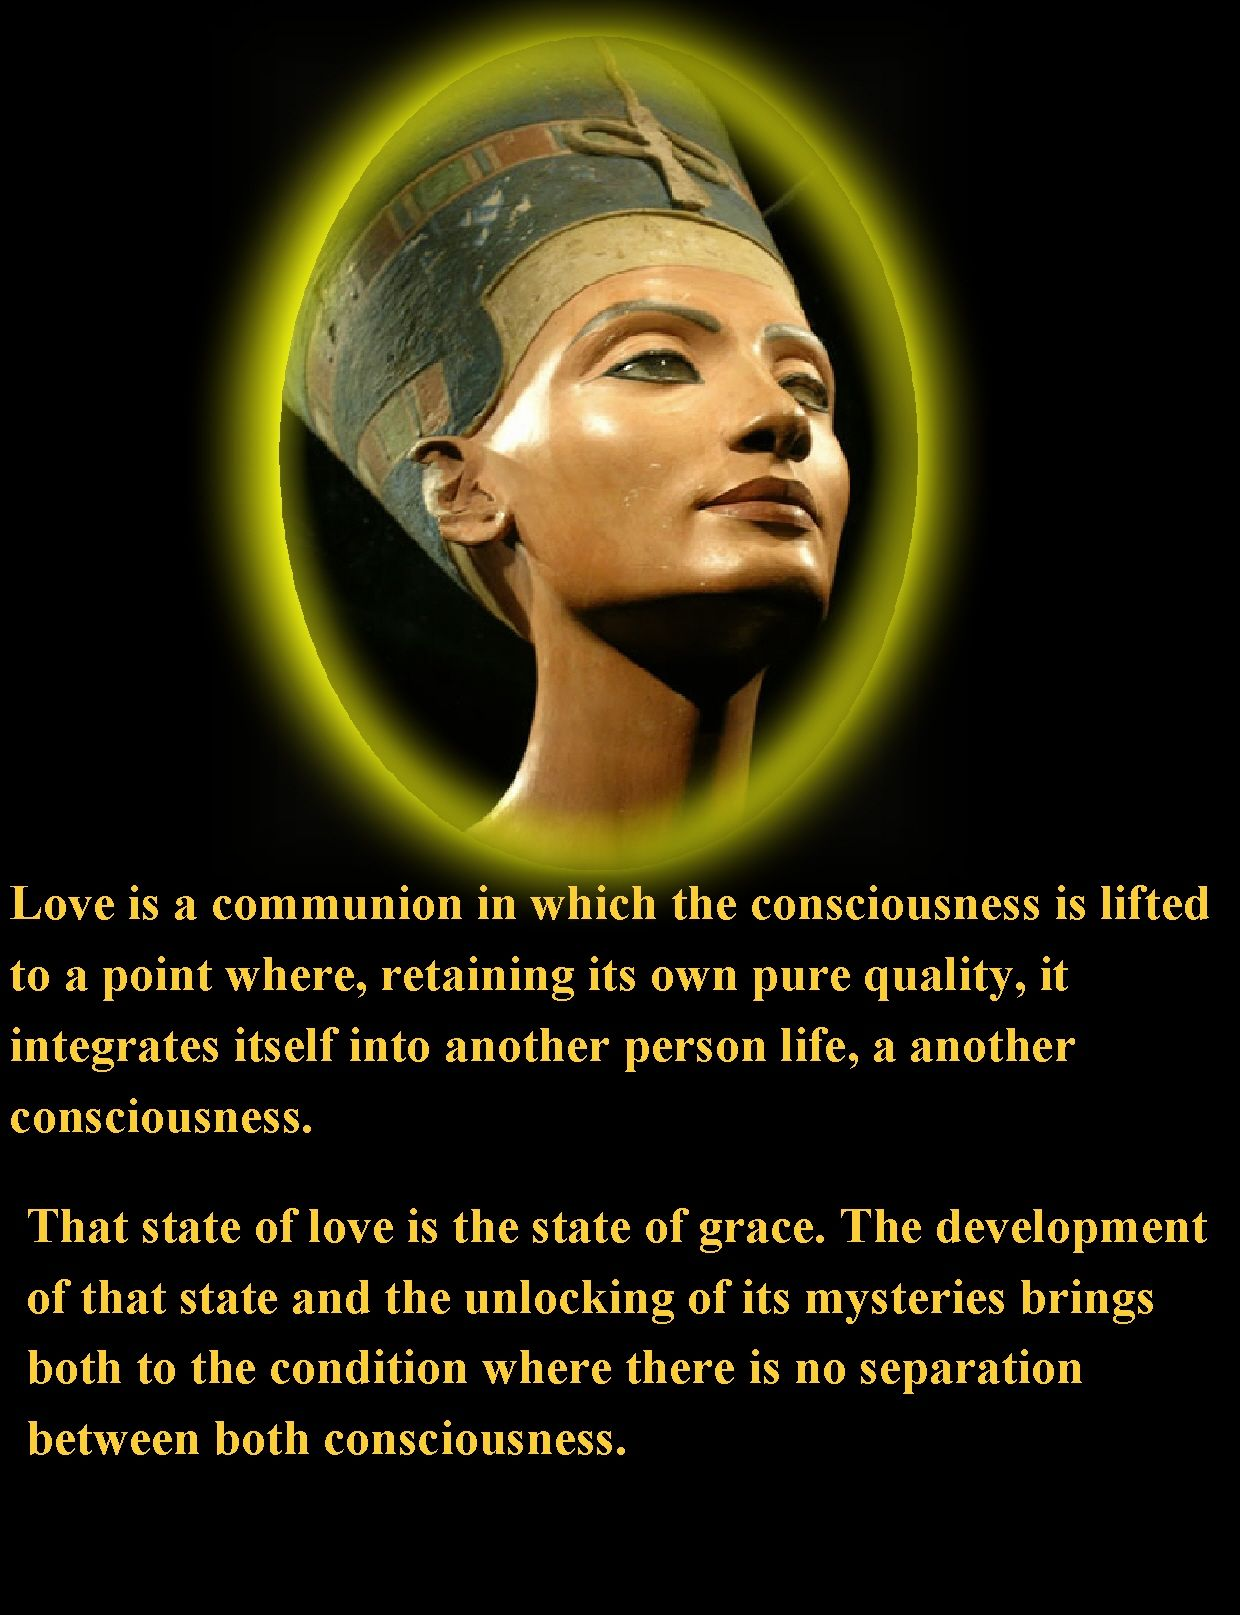 Strong Black Woman Art - Google Essence Of Woman- And Wise Women